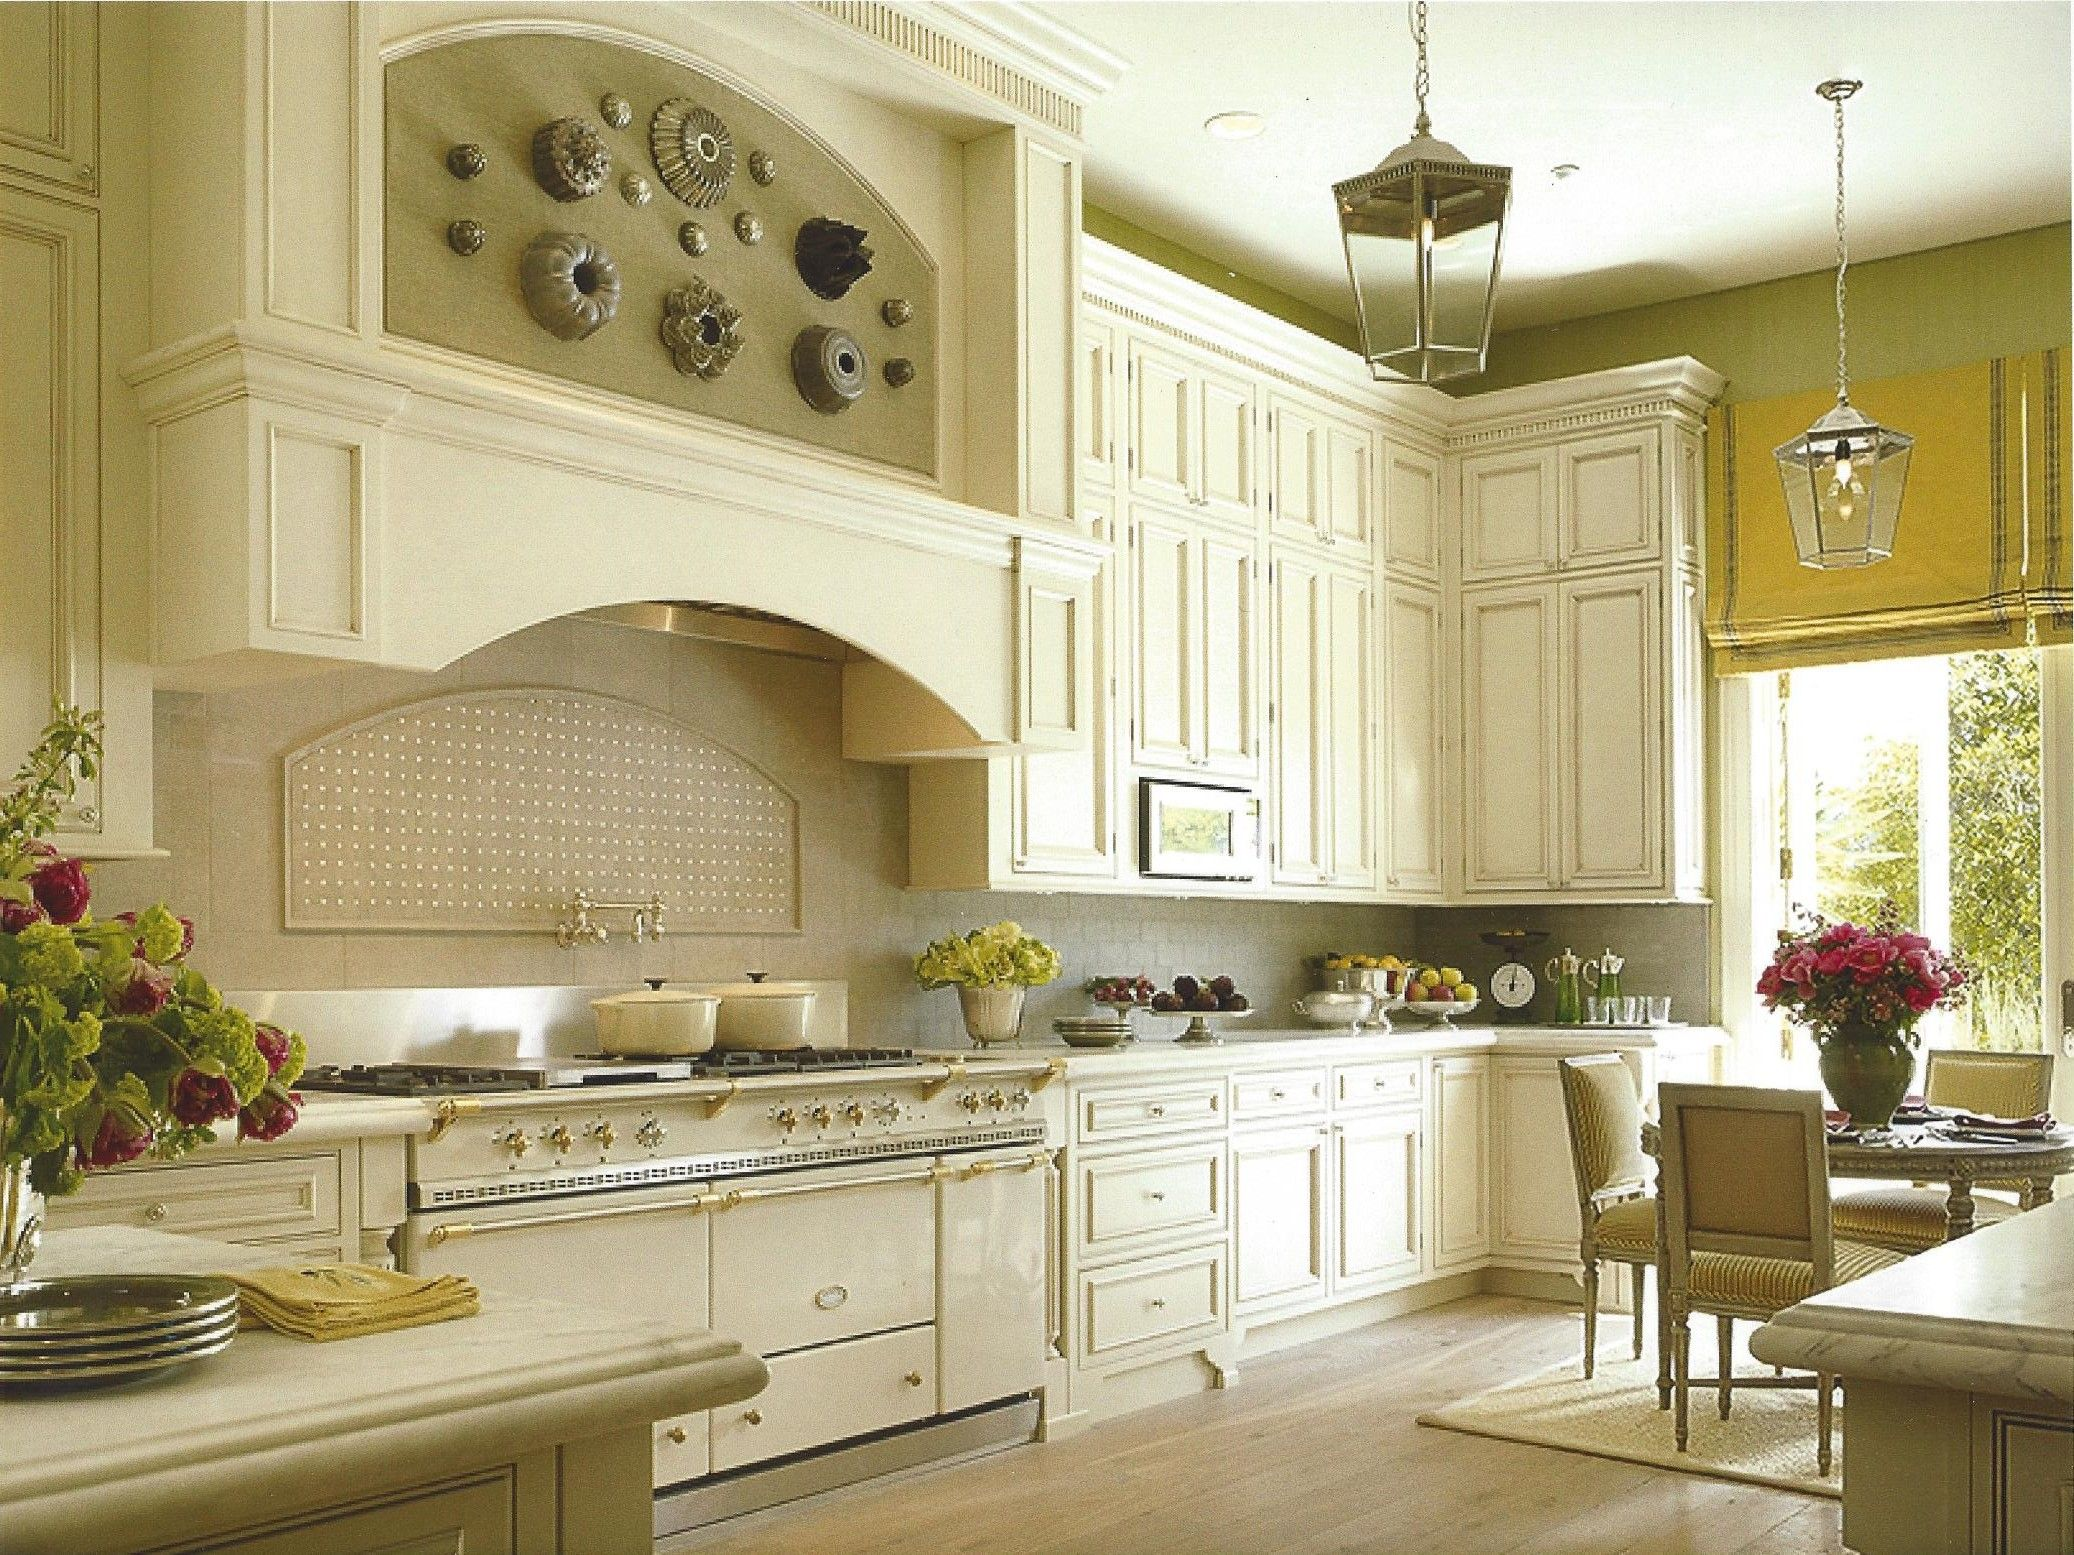 San Francisco Decorator's Showcase Kitchen by Shelley